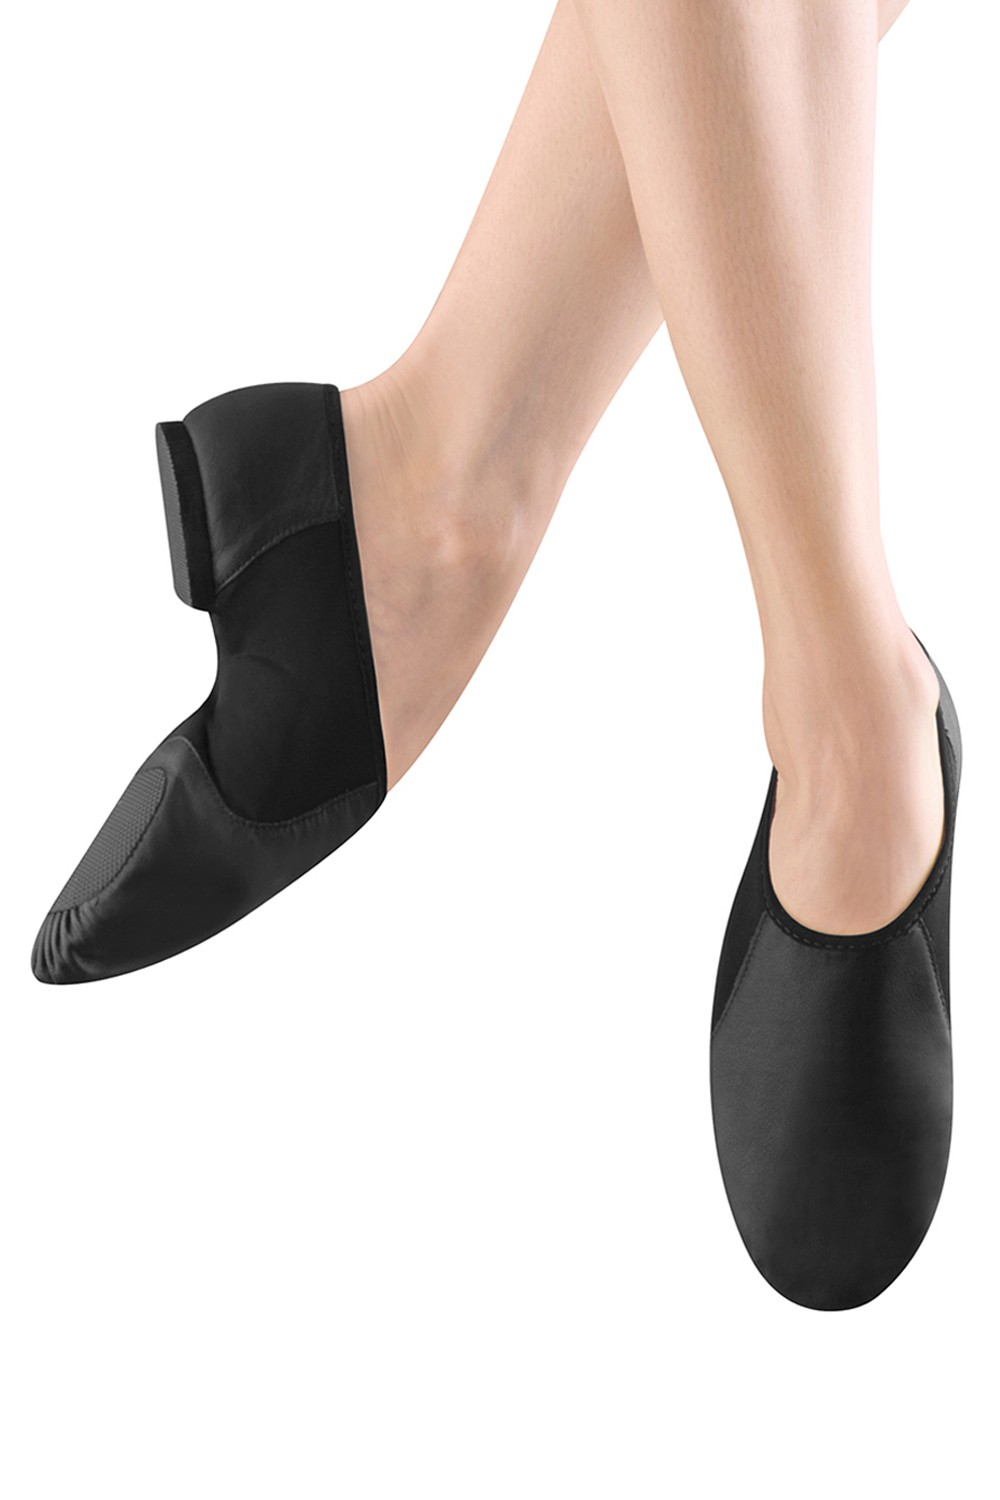 Neo-flex Slip On - Girls Girl's Jazz Shoes